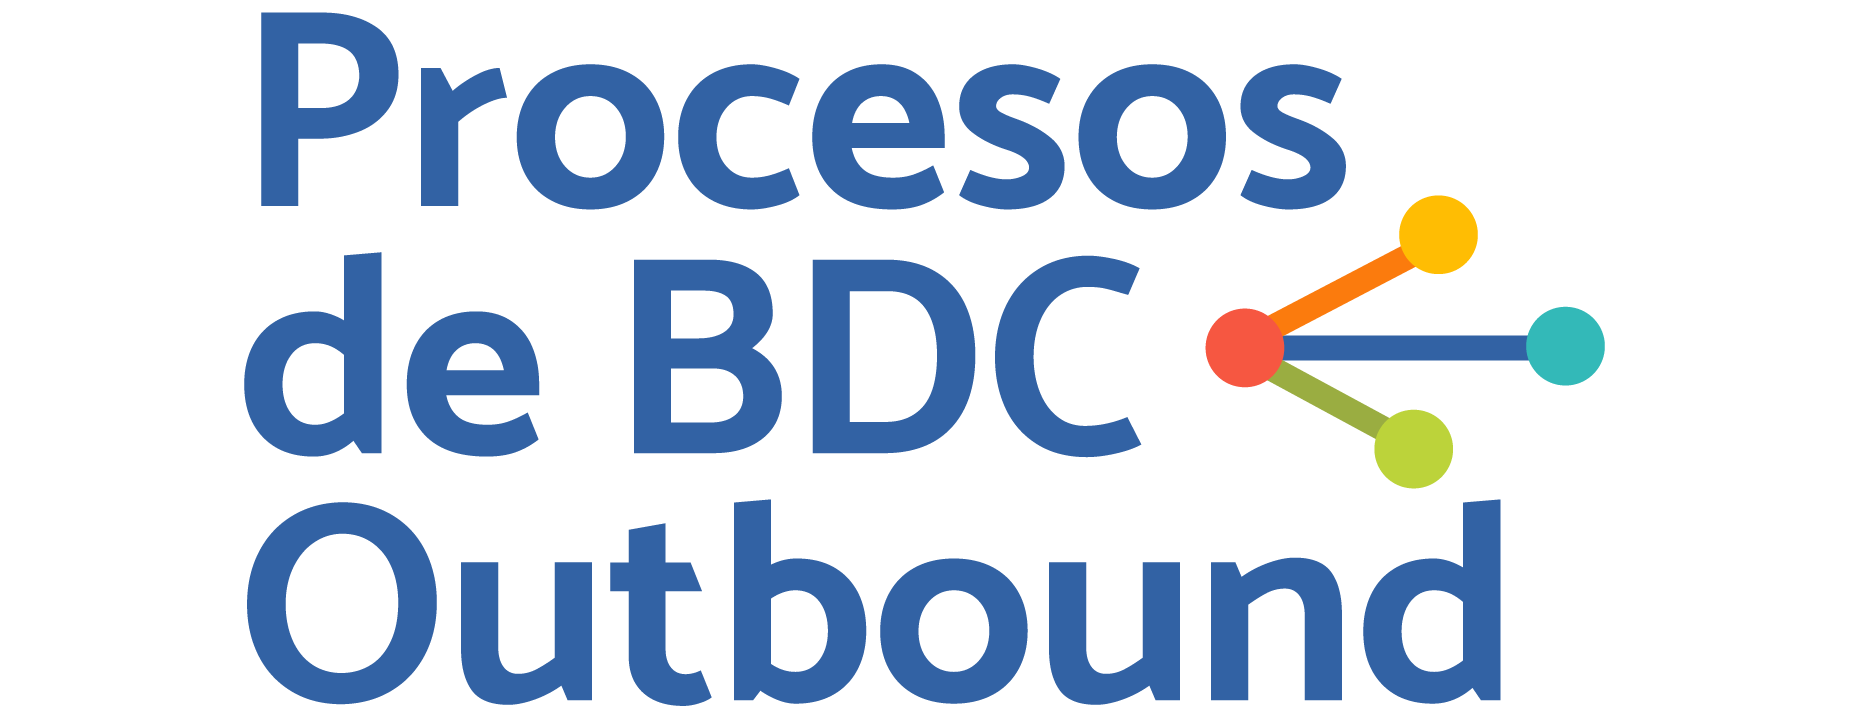 logo curso procesos outbound